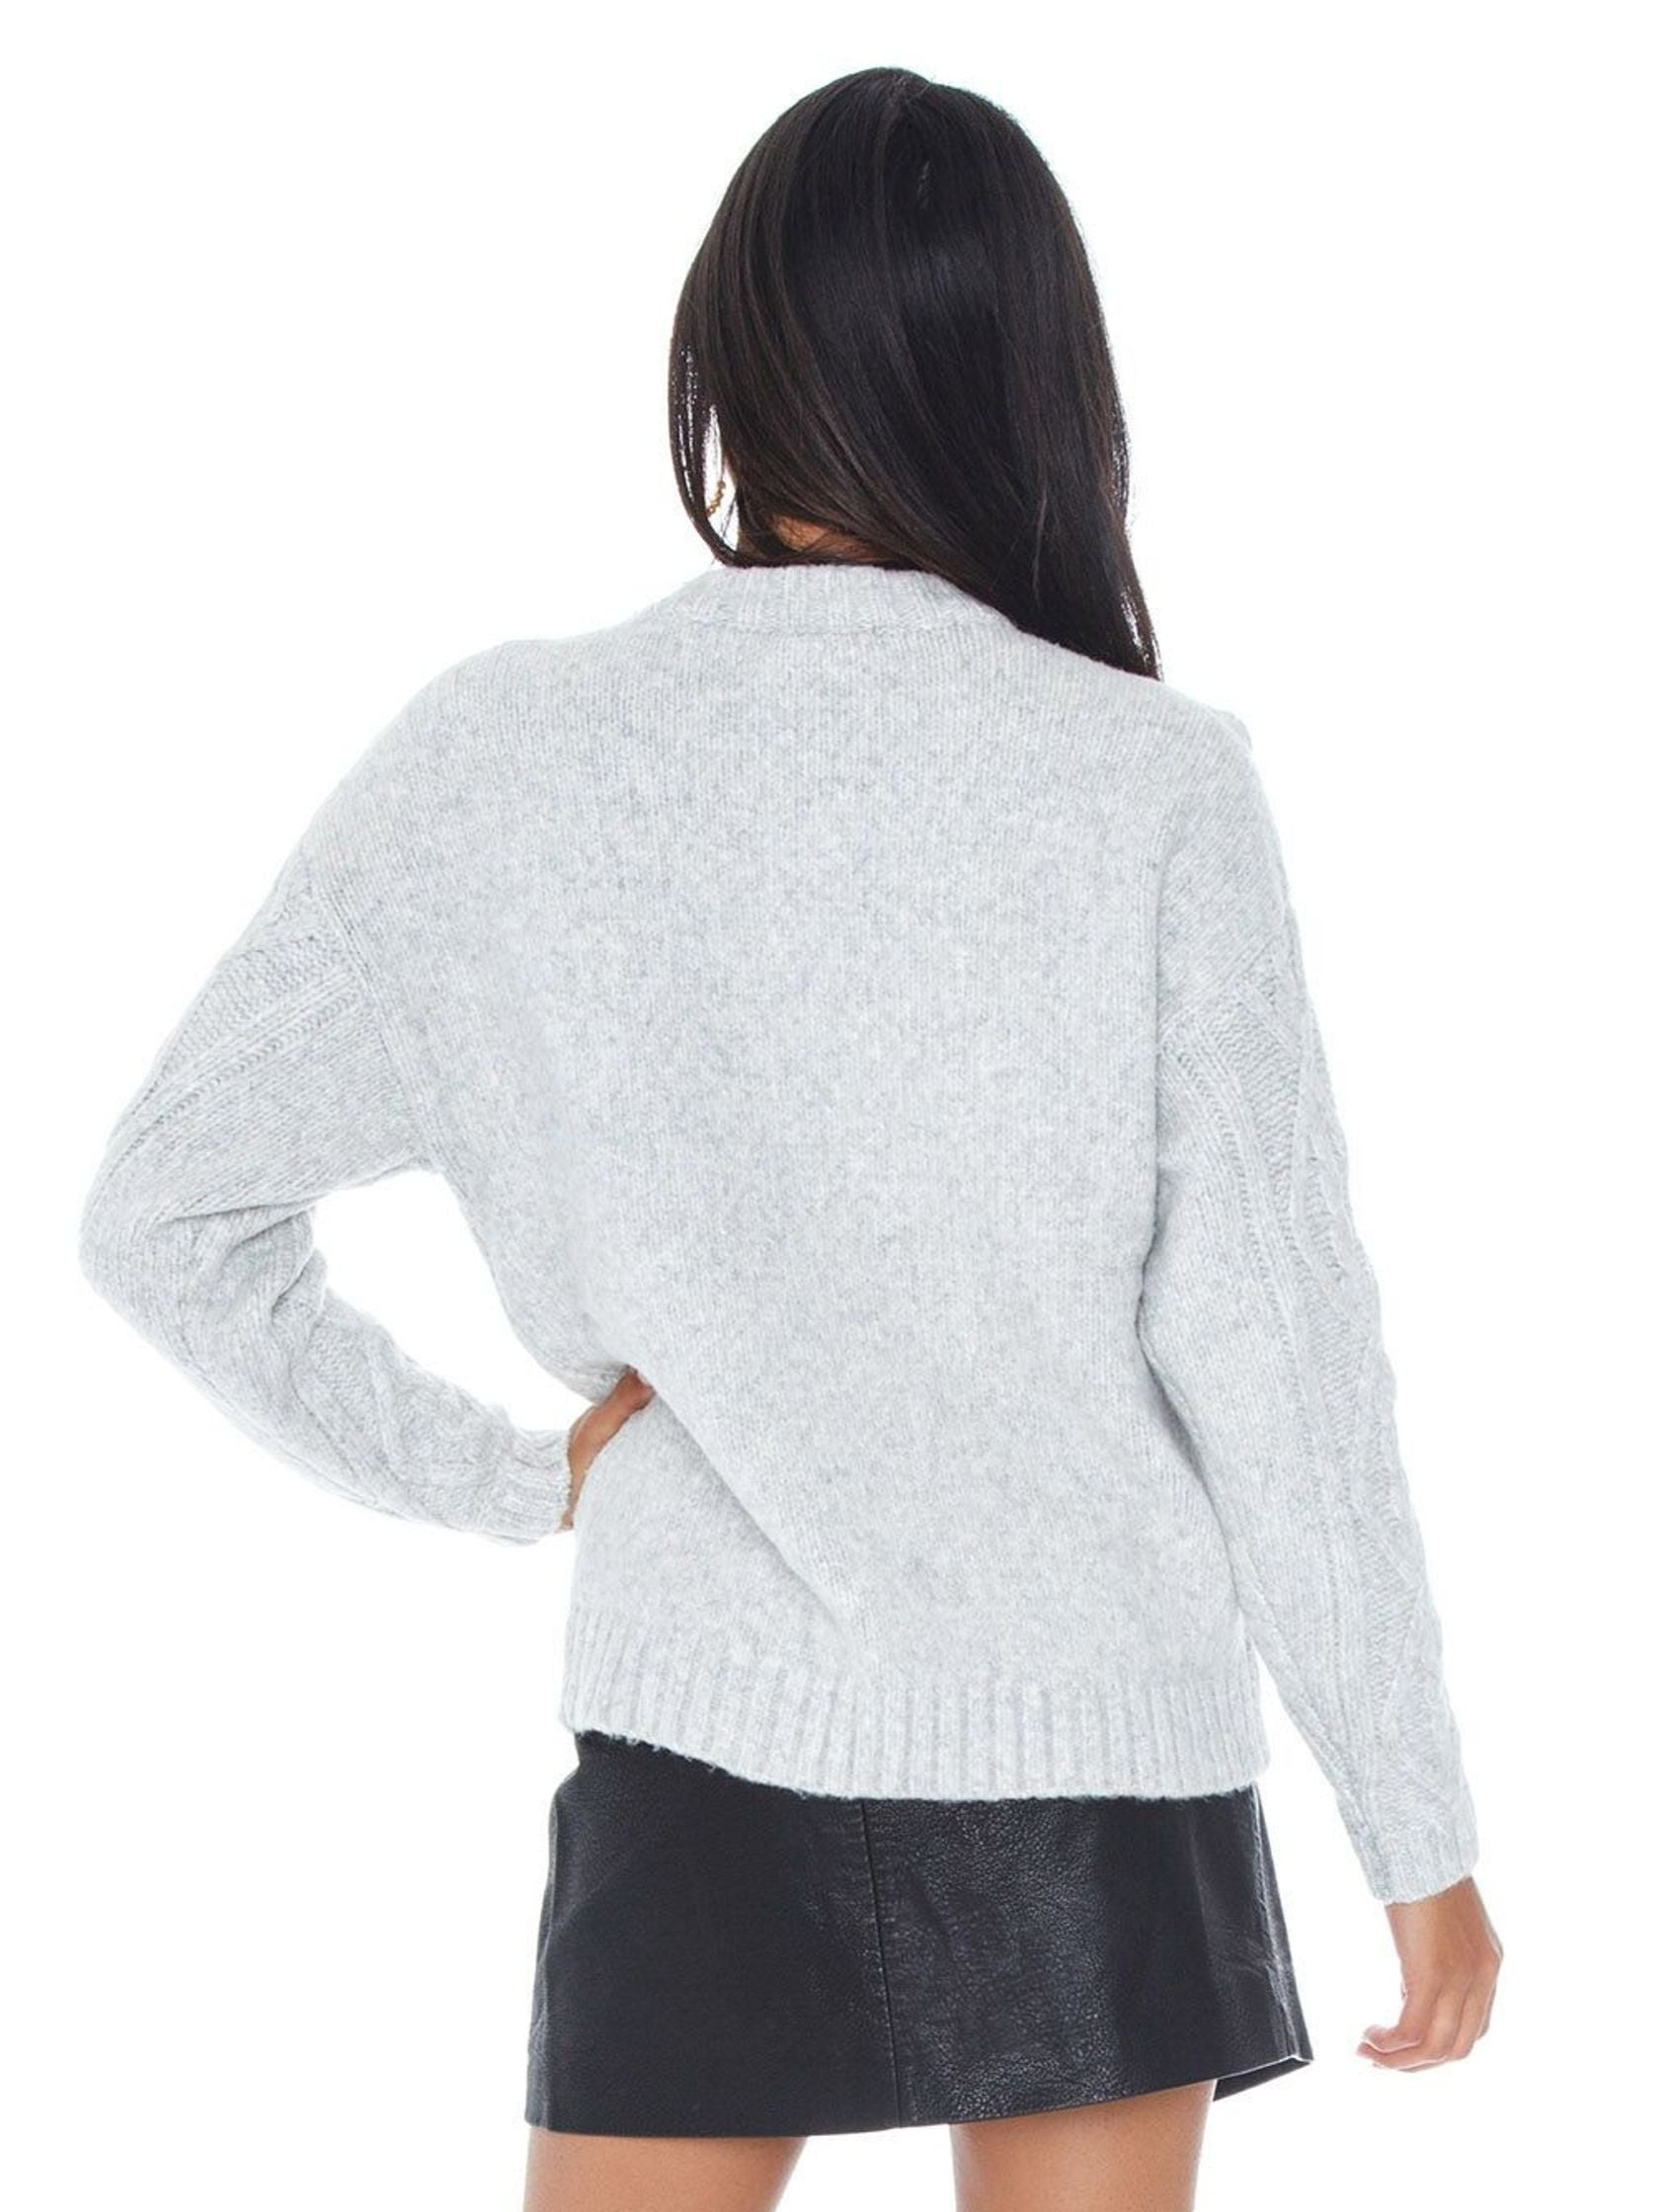 Women outfit in a sweater rental from Line & Dot called Mila Sweater